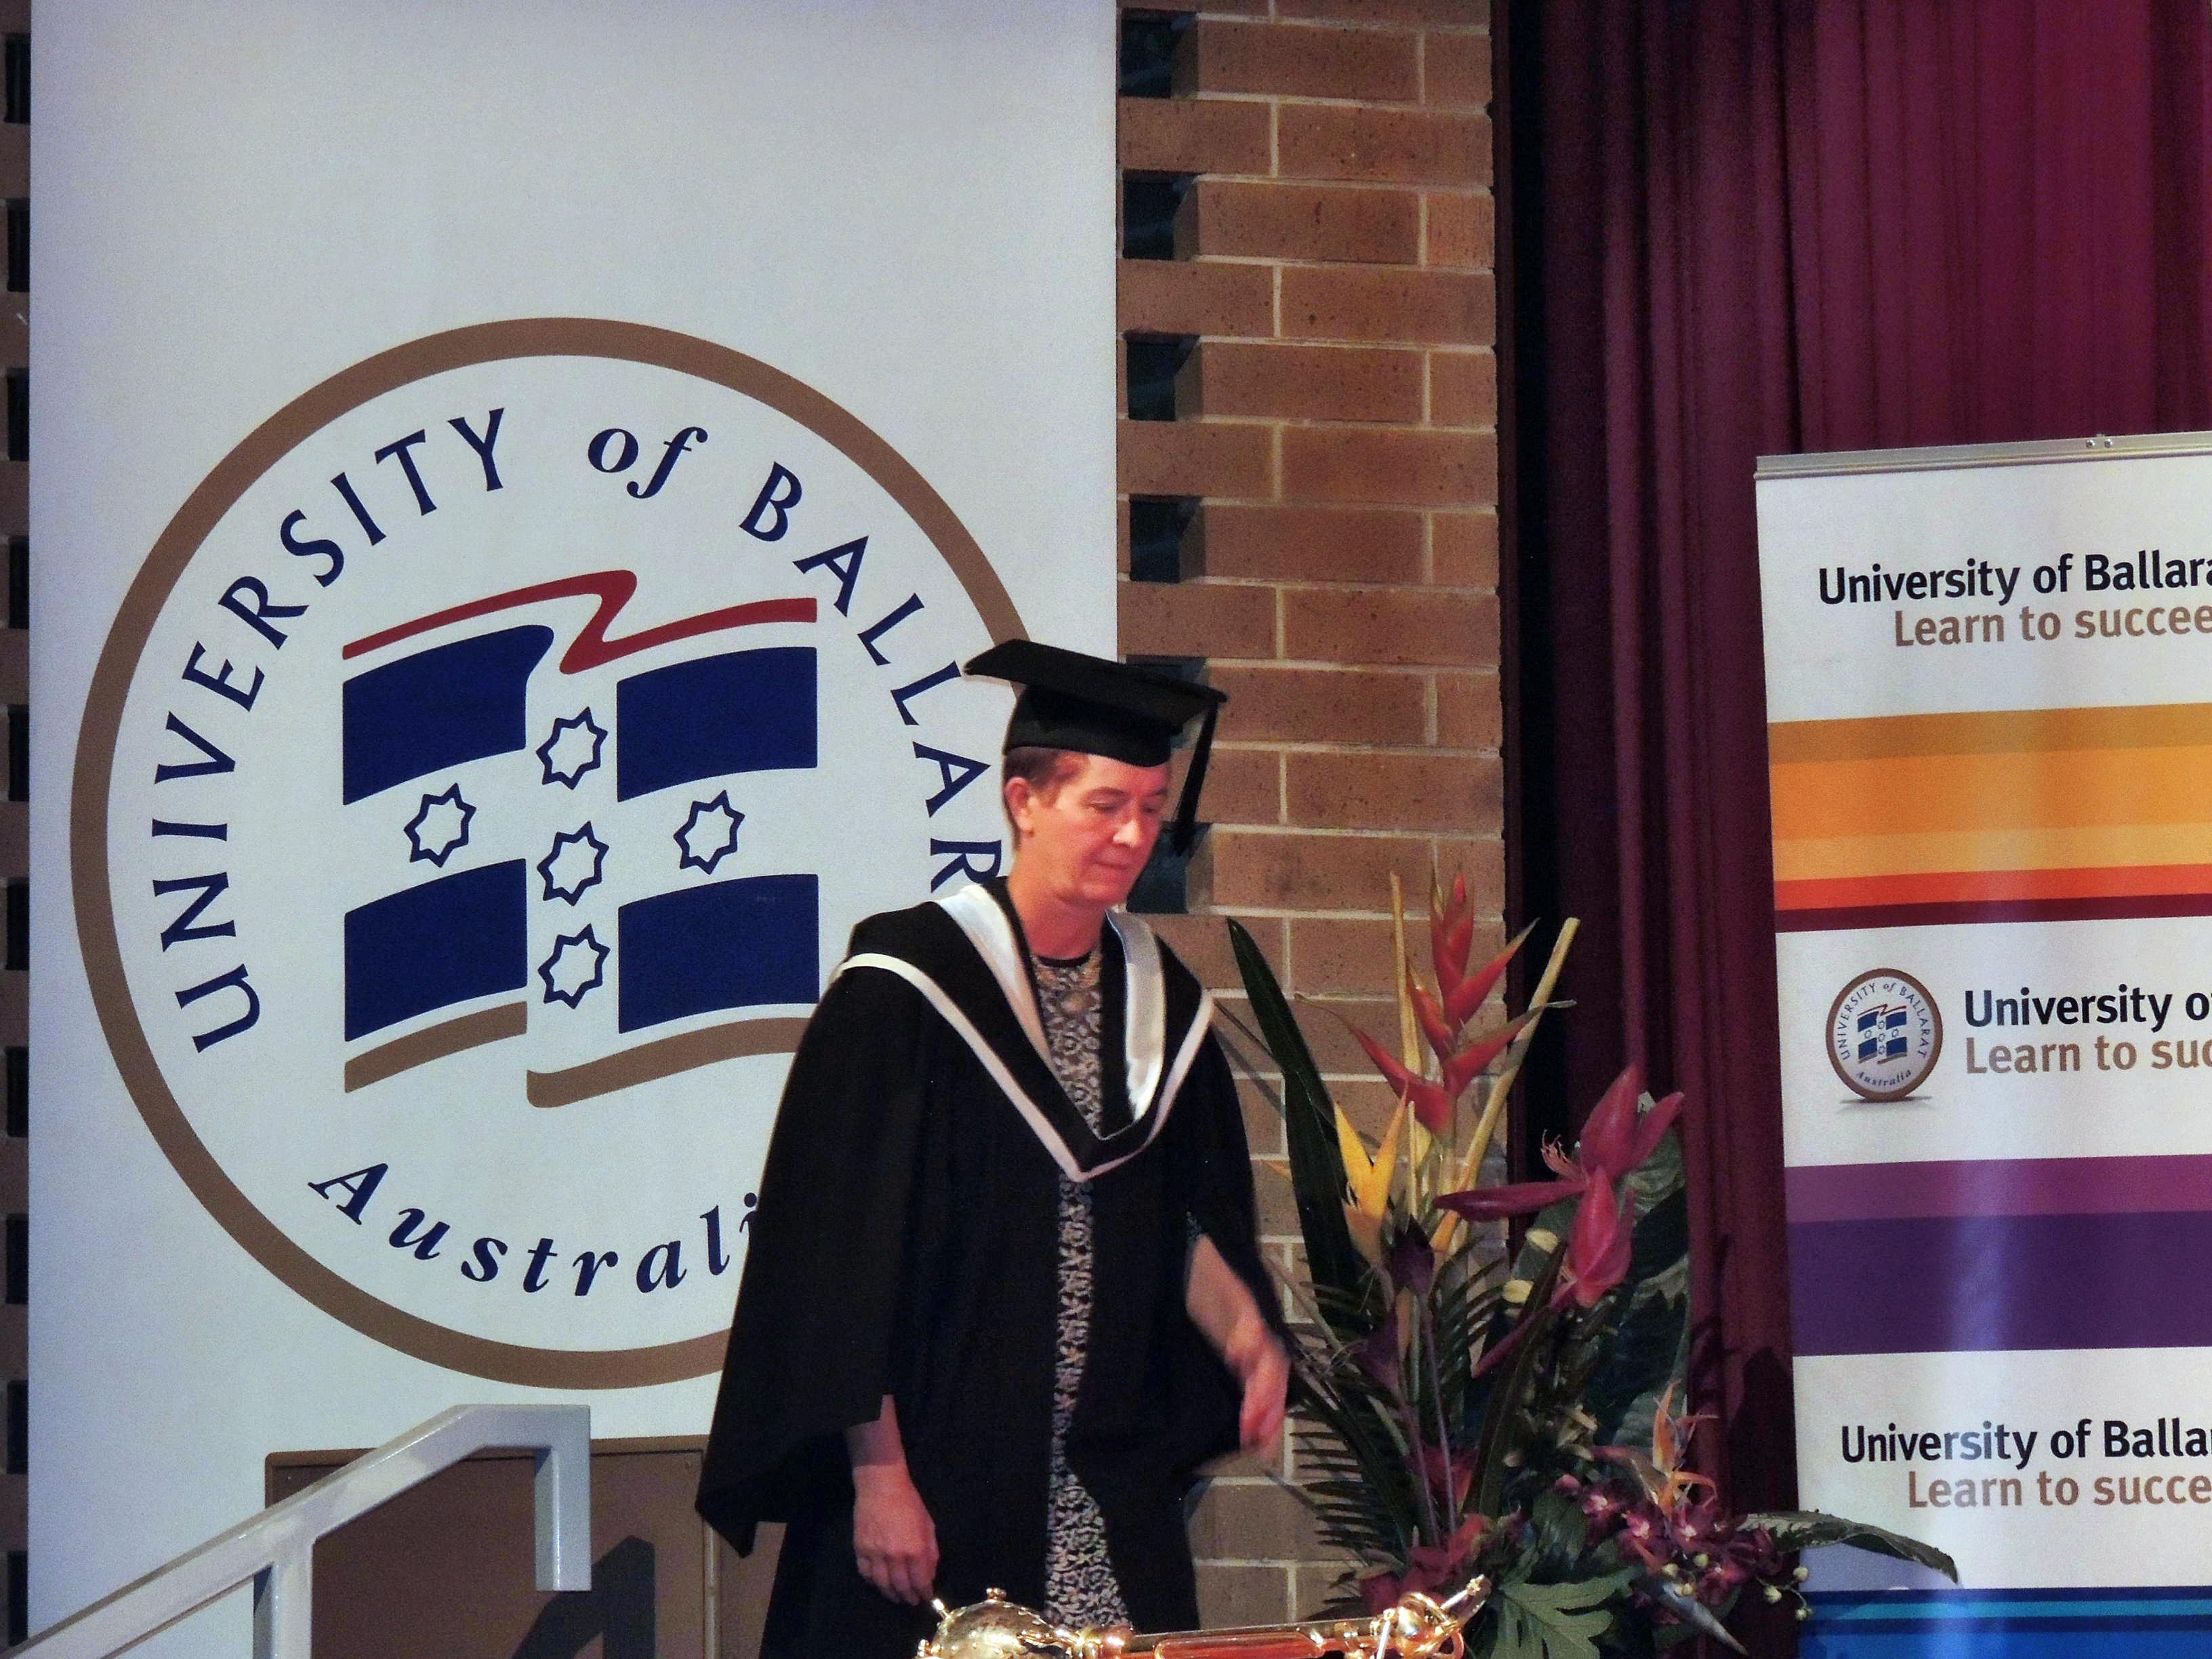 Chris-Graduation-010.jpeg